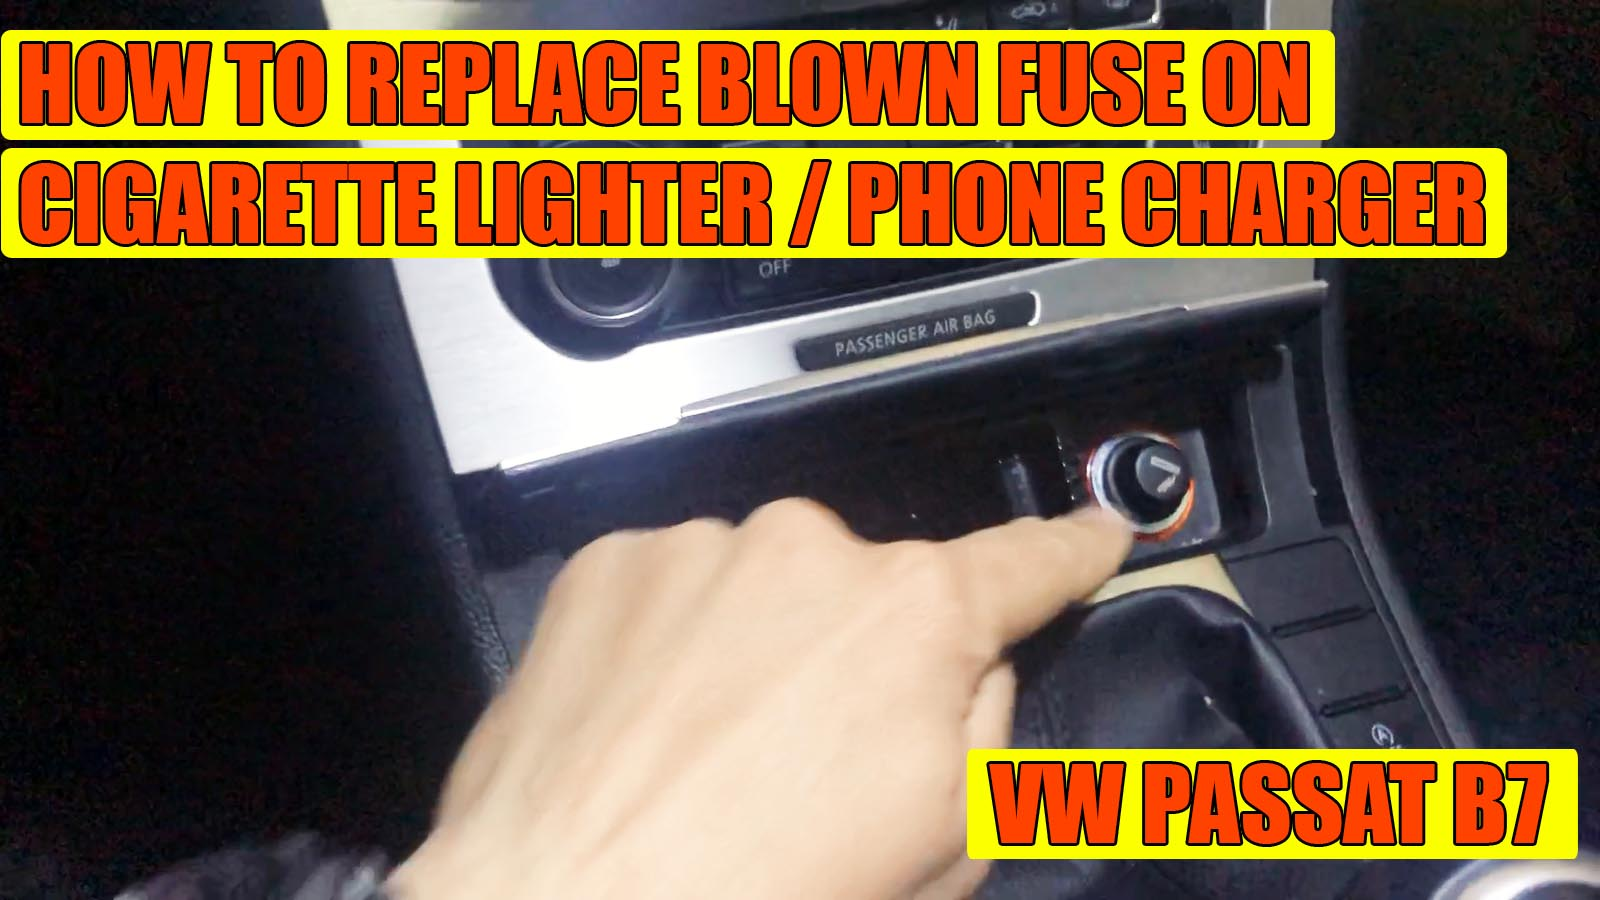 Phone charger / cigarette lighter not working? Fuse ... on vw polo engine, vw rabbit fuse box, vw polo tail light, vw touareg fuse box, vw polo steering column, vw golf fuse box, vw bus fuse box, vw eos fuse box, vw tiguan fuse box, vw polo horn, vw passat fuse box, vw polo tie rod, vw jetta fuse box diagram, vw beetle fuse box diagram,